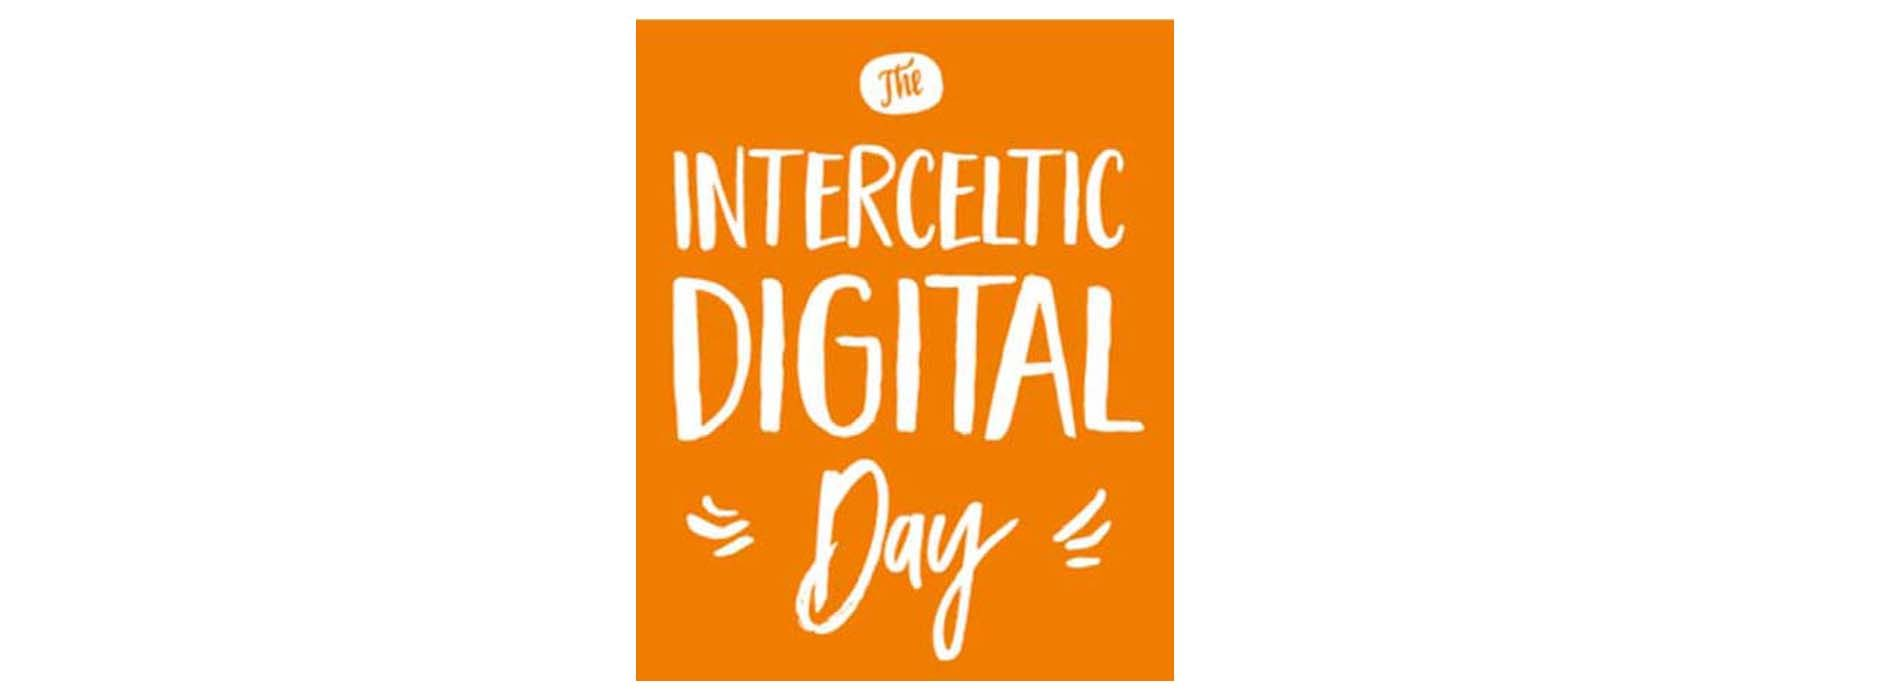 Interceltic Digital Day